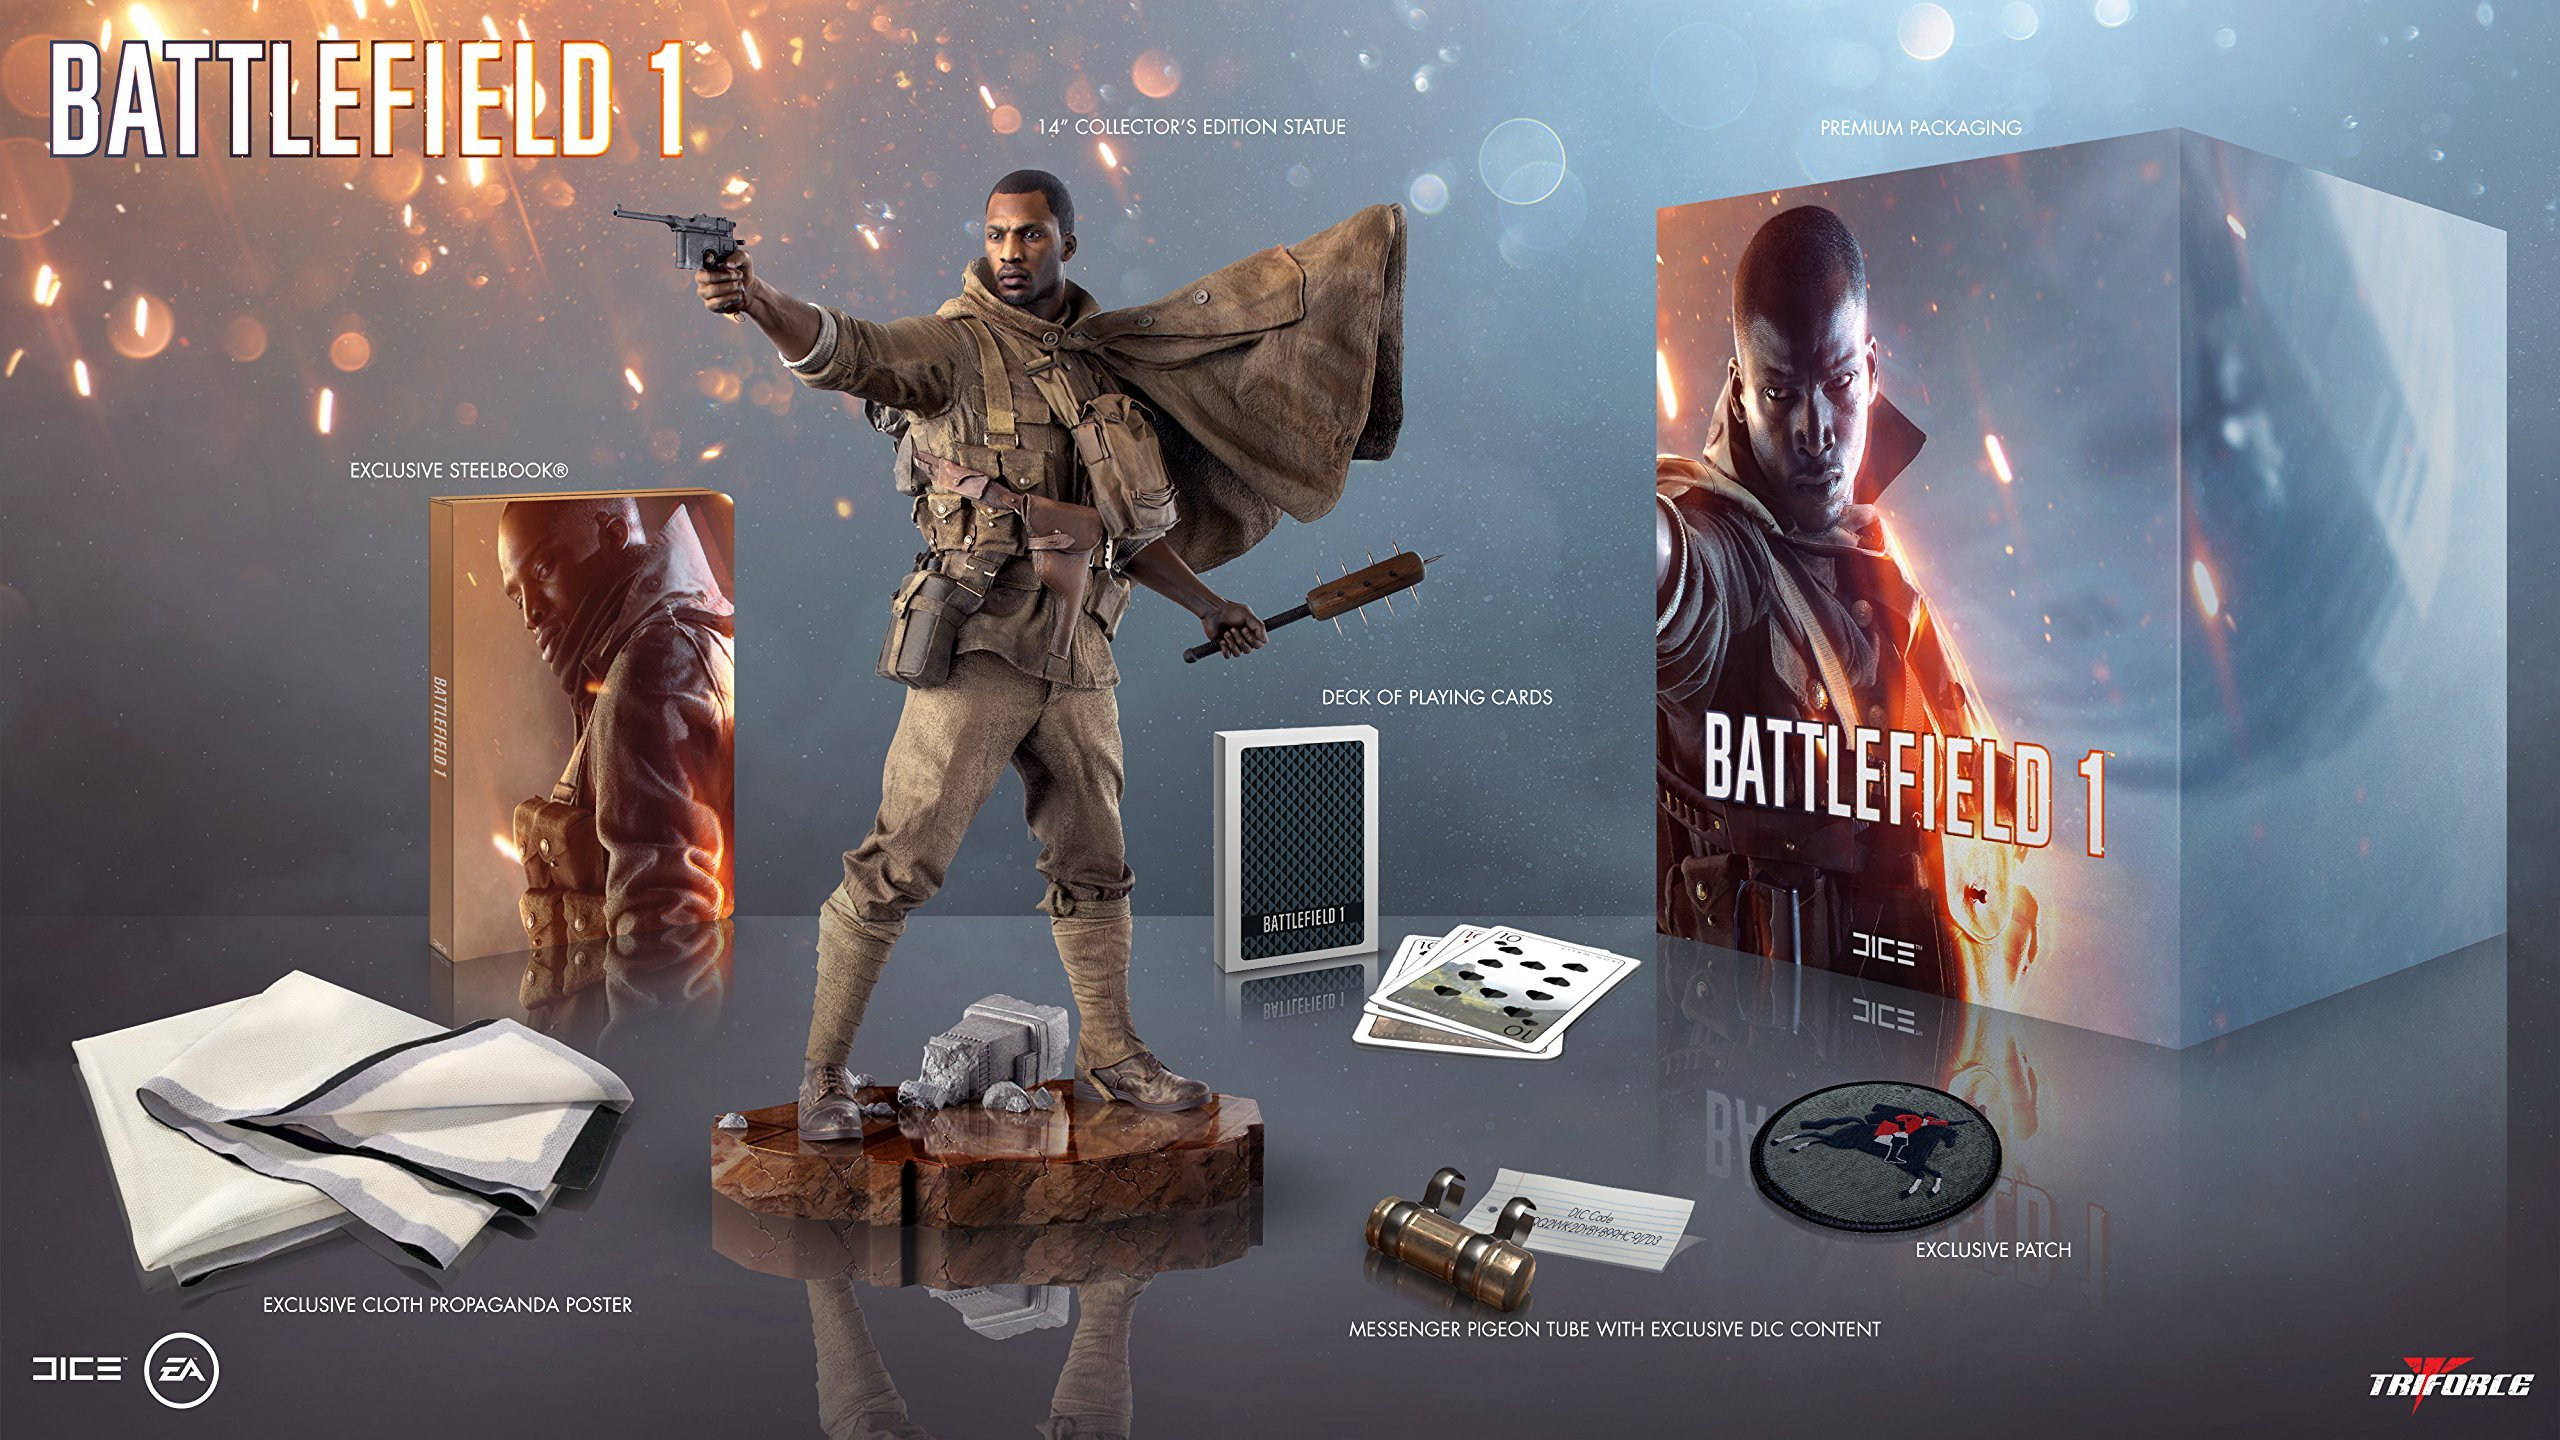 Battlefield-1-Exclusive-Collectors-Edition.jpg